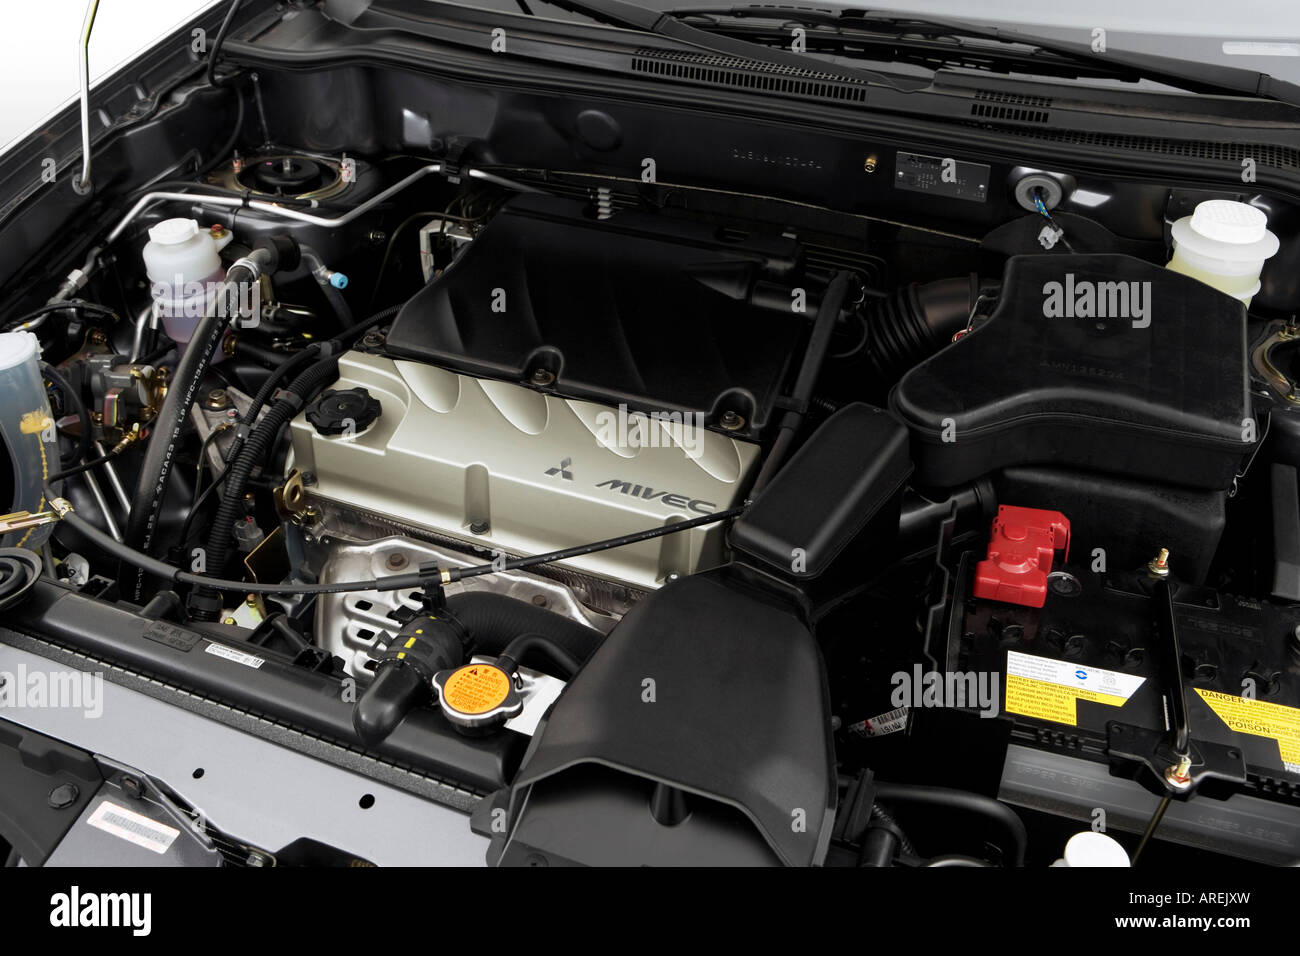 2006 Mitsubishi Outlander SE in Gray - Engine Stock Photo: 16031328